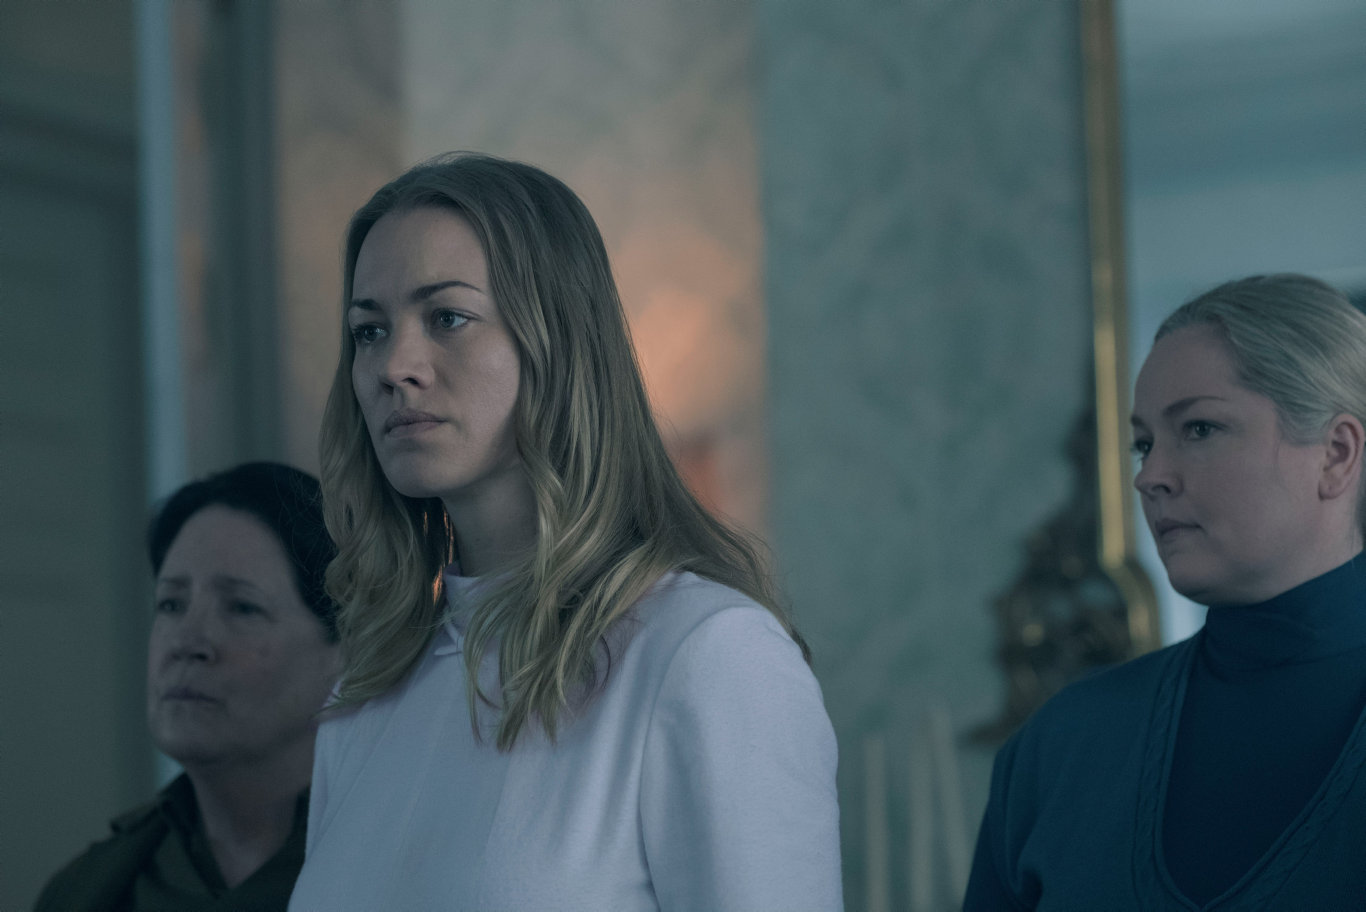 Yvonne Strahovski in a scene from season two of The Handmaid's Tale.